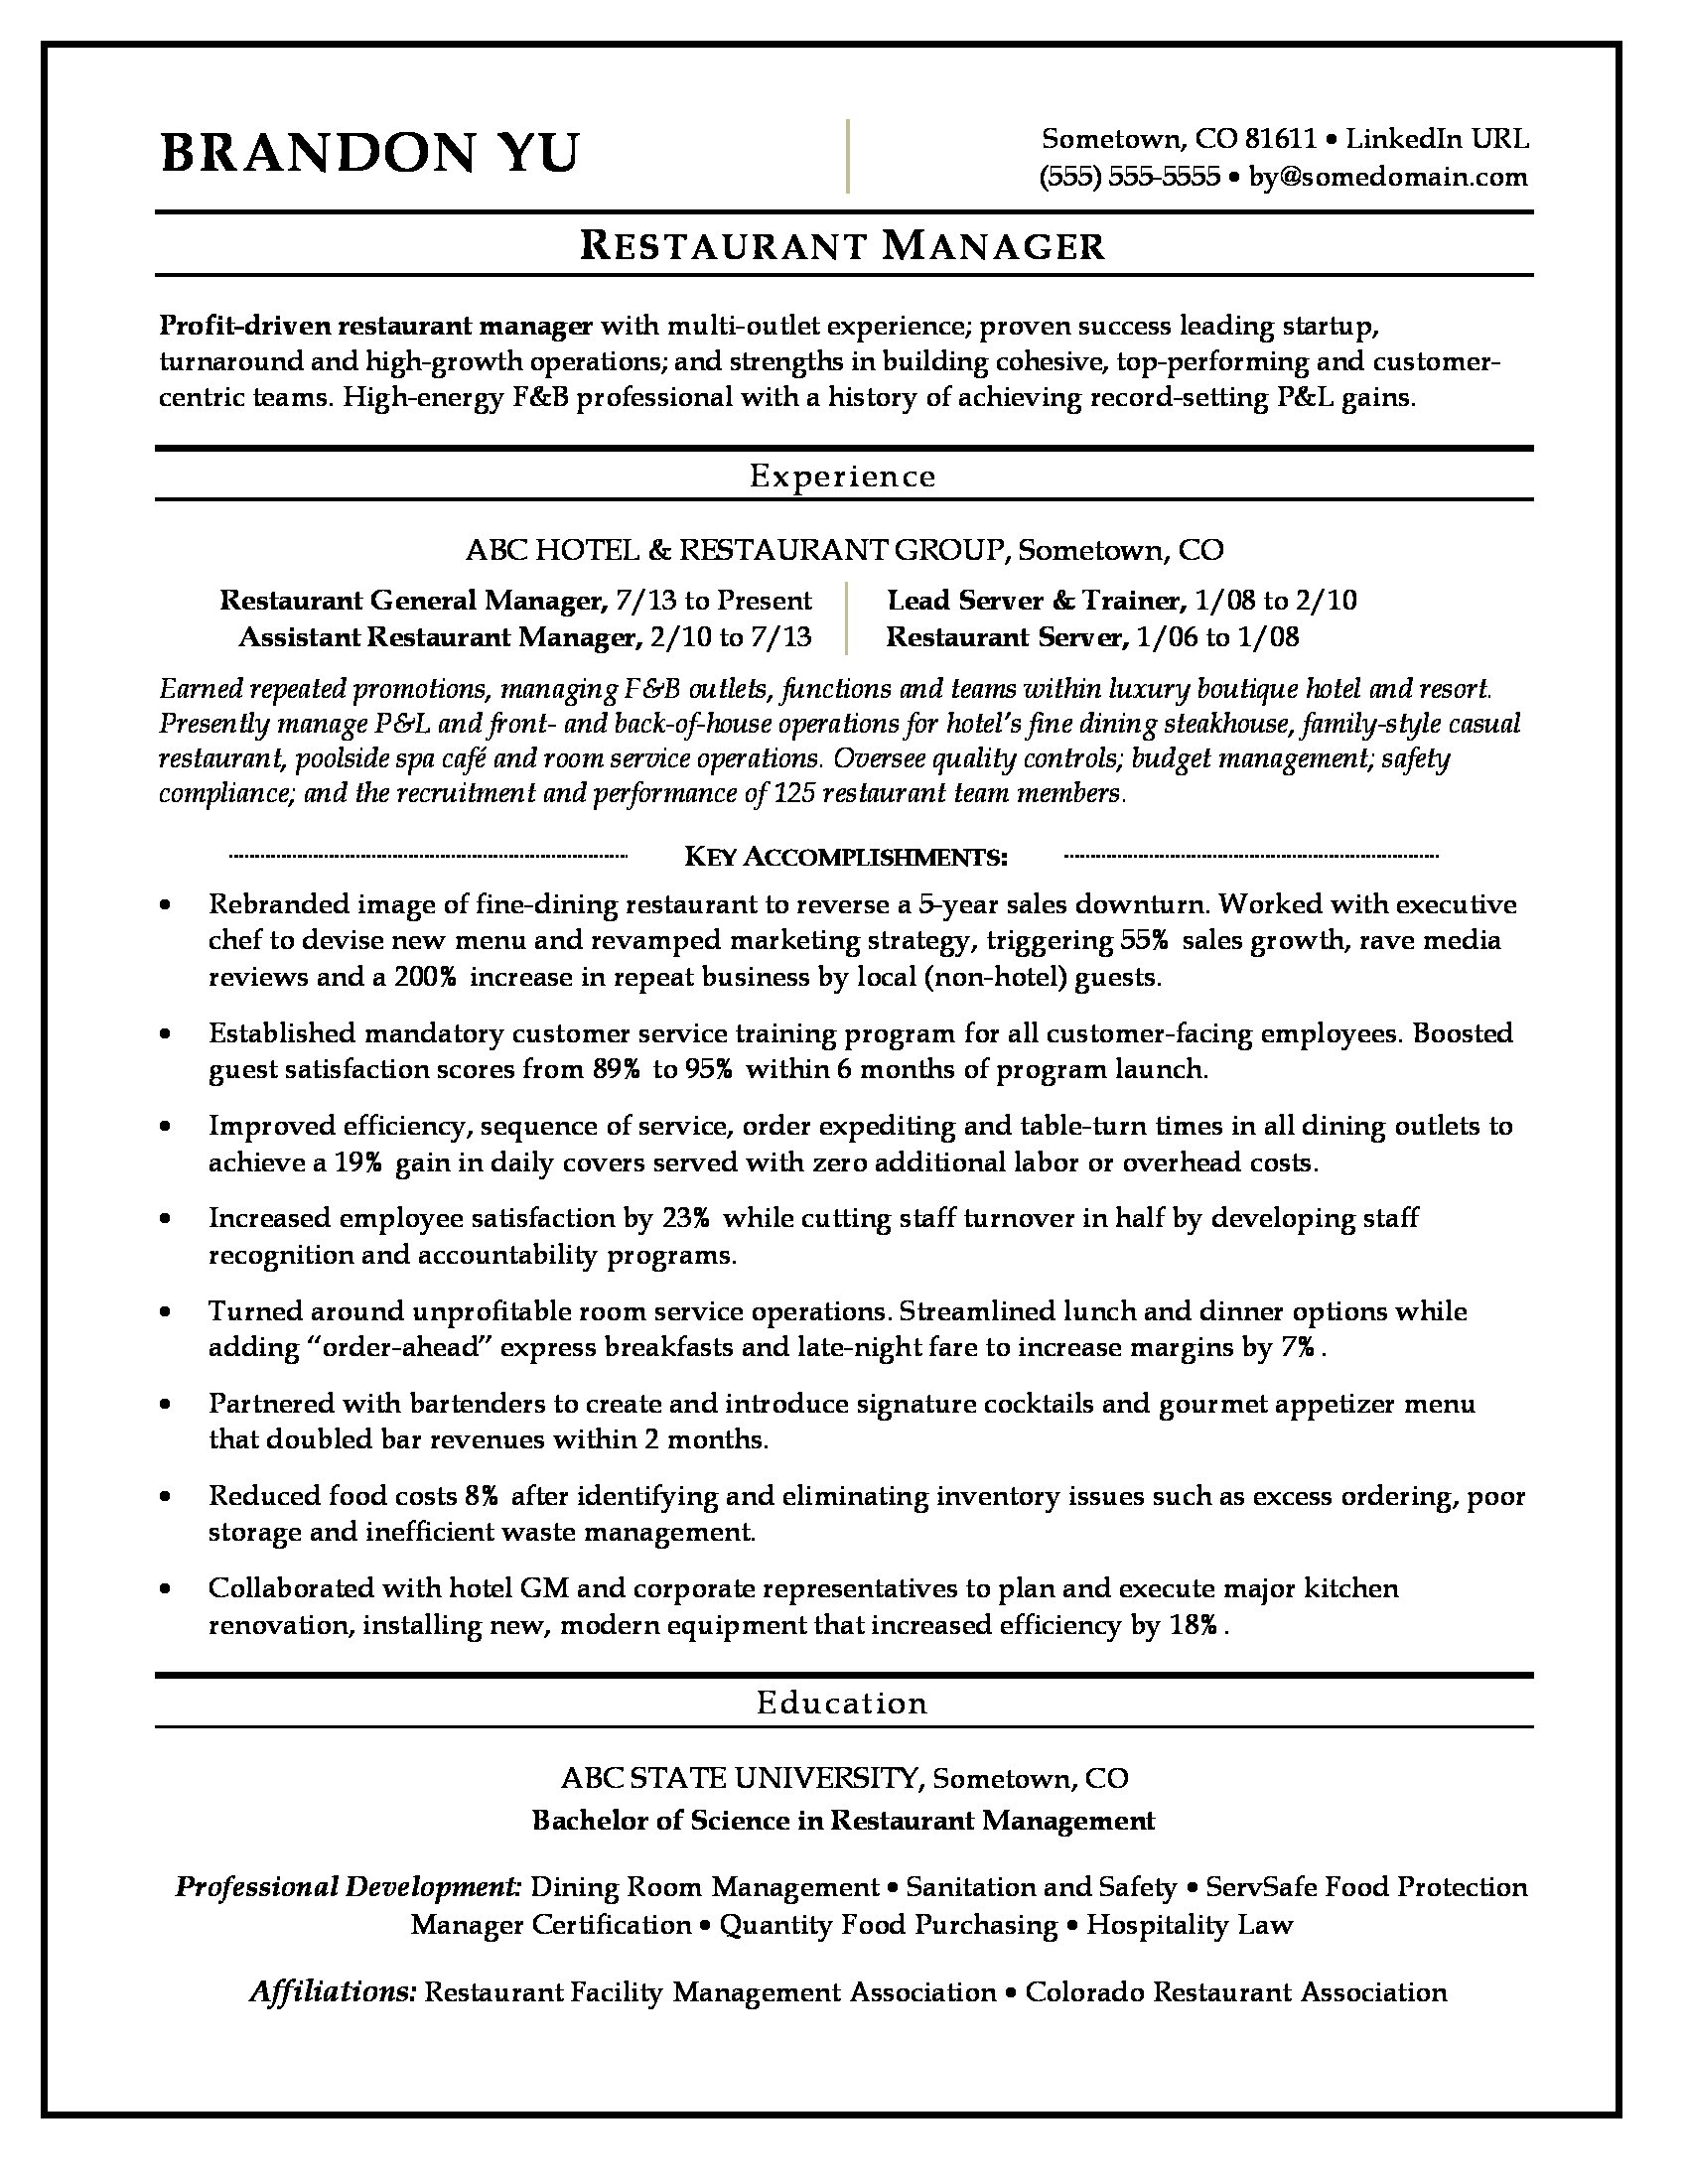 sample resume for a restaurant manager - Sample Resume